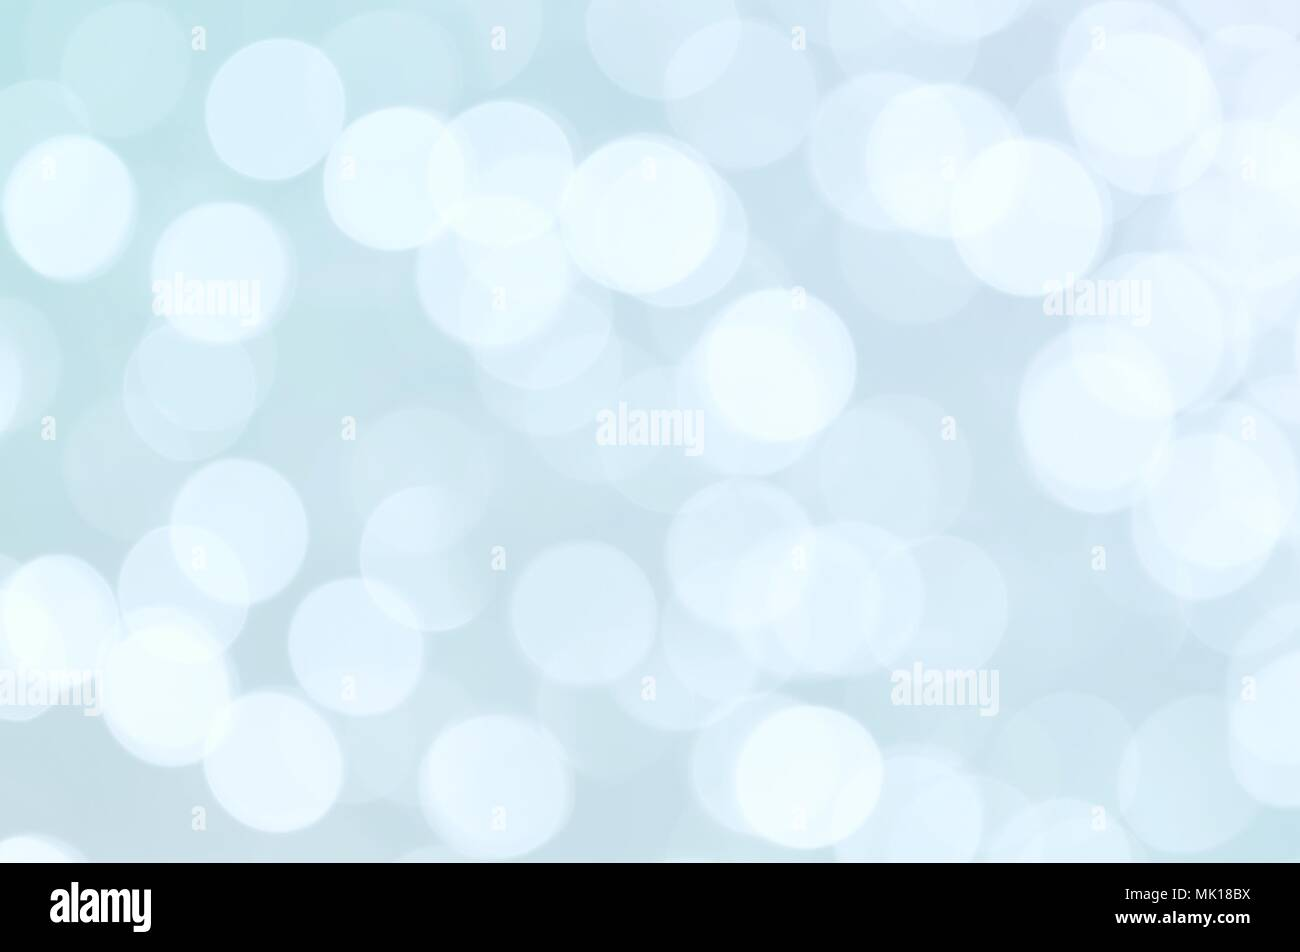 Abstract blue color blurred bokeh light / water reflection for background - Stock Image